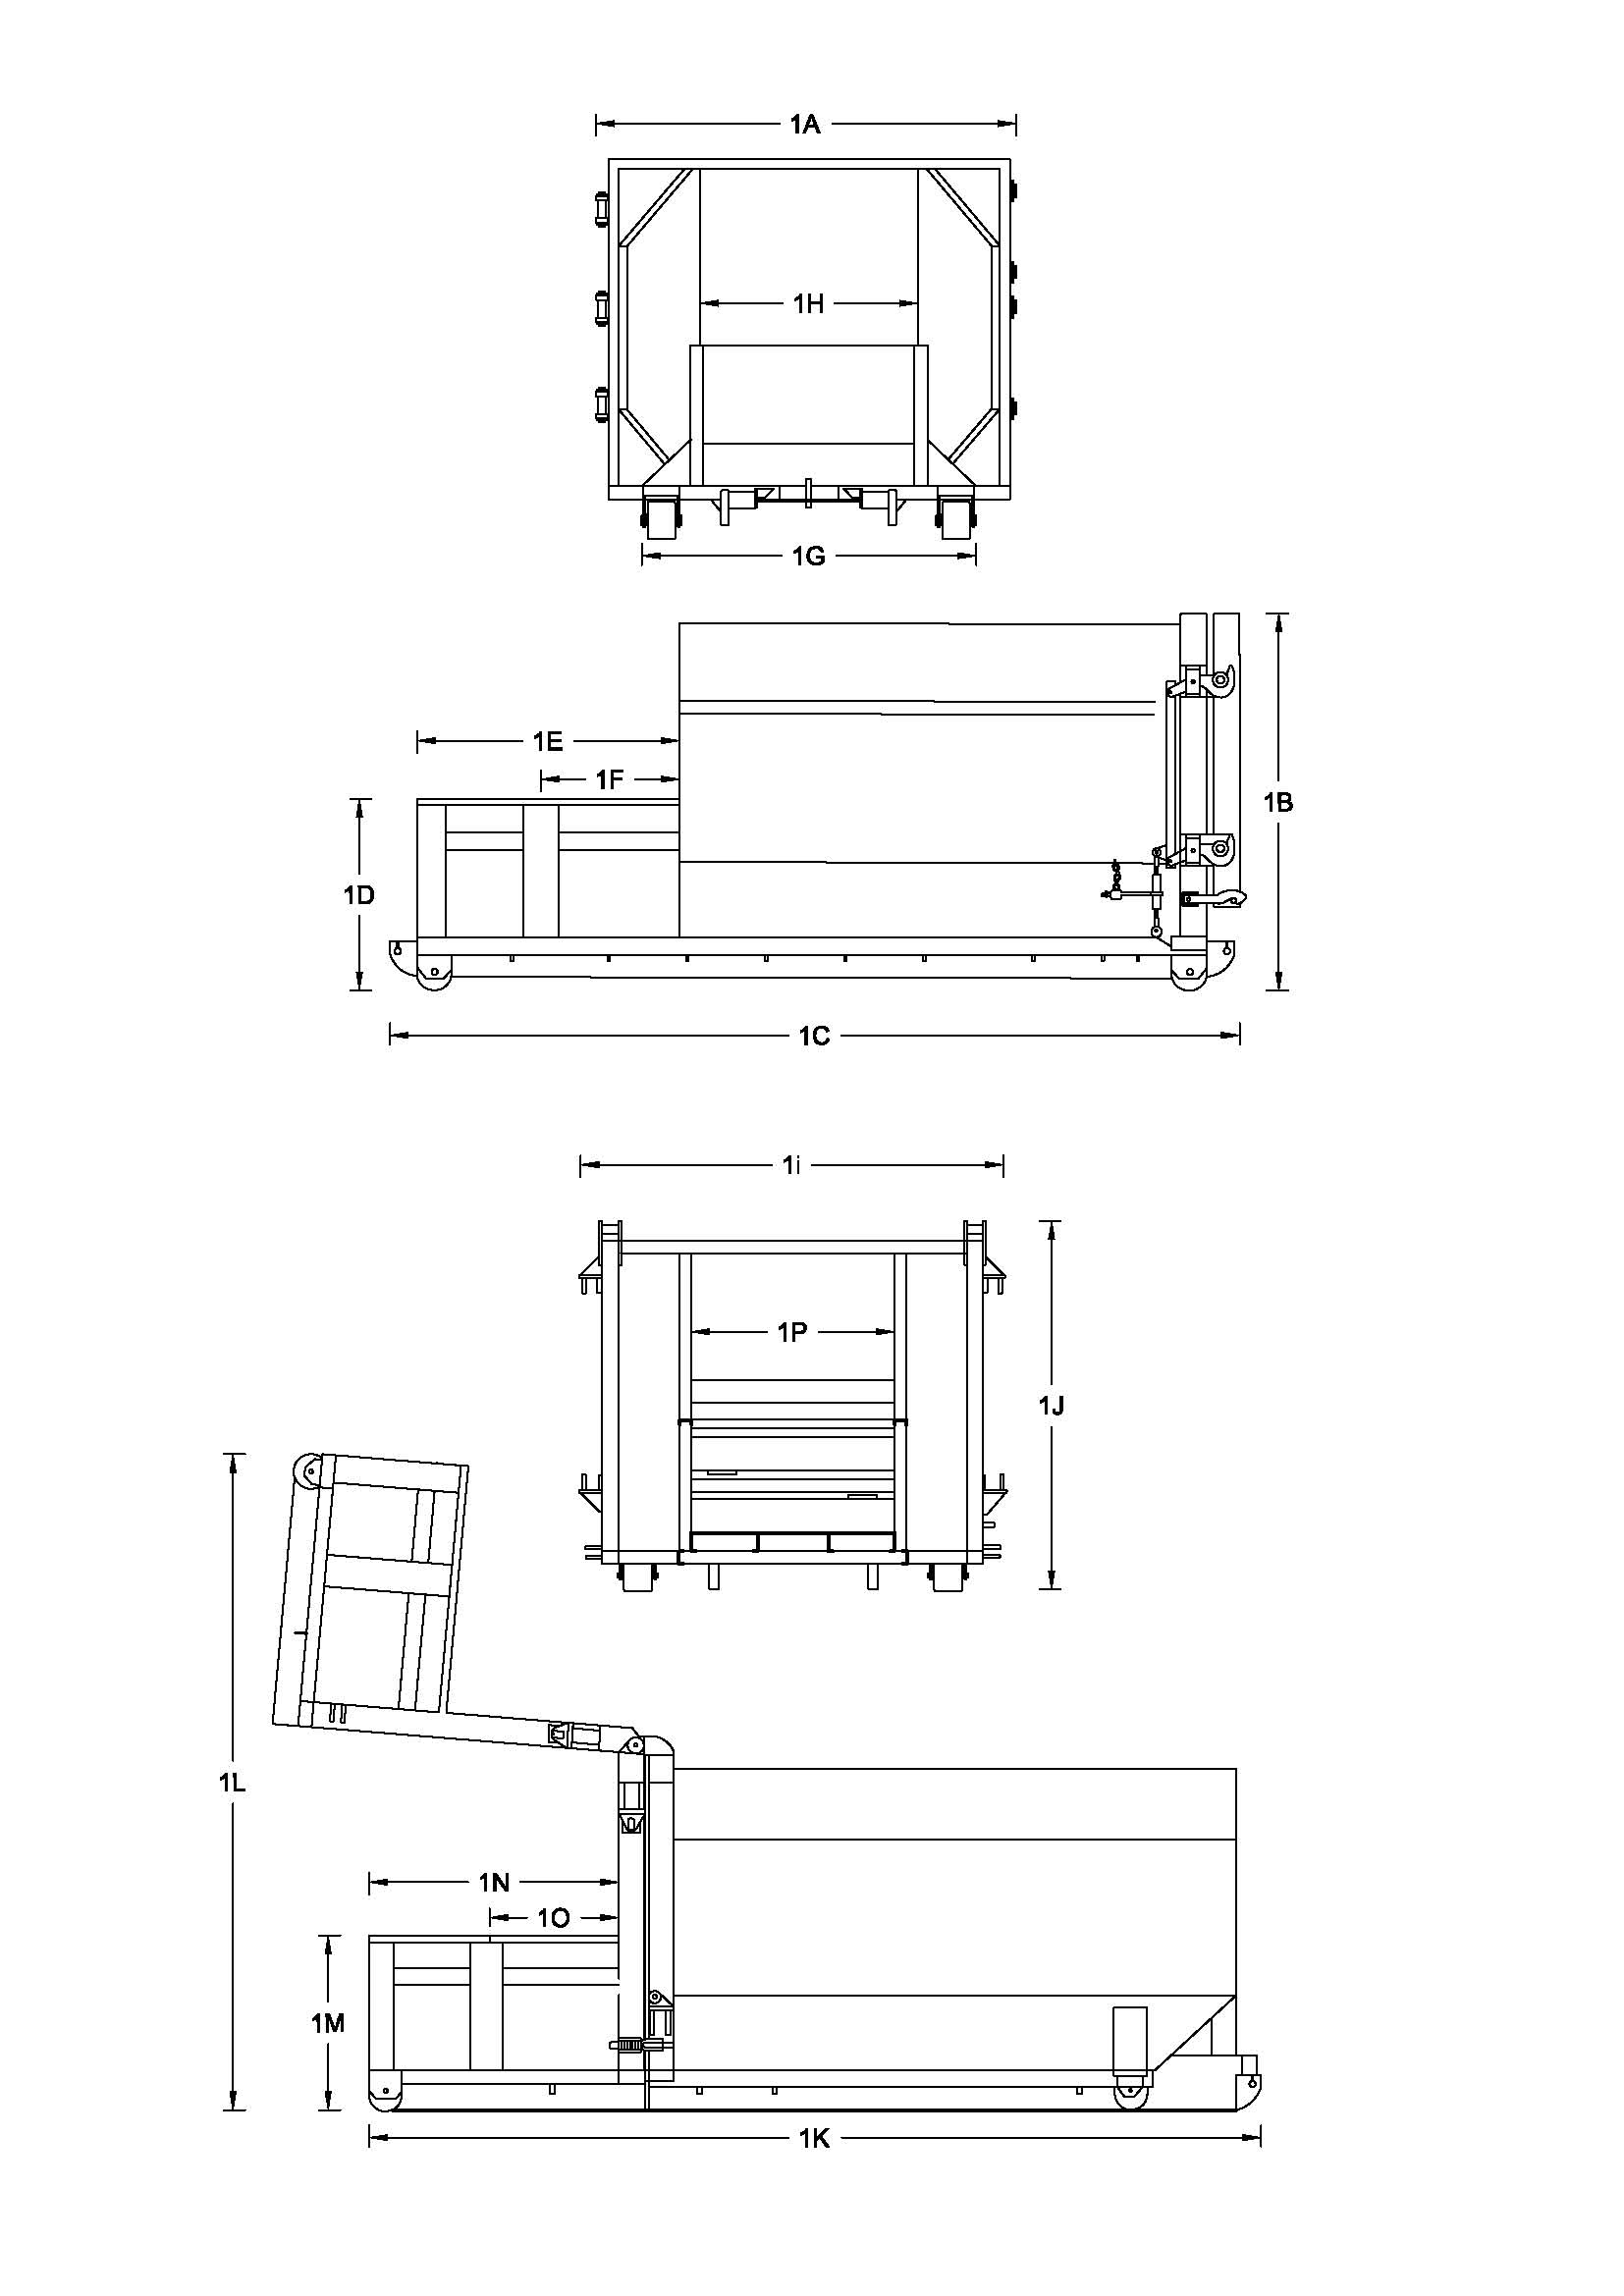 1 Yard Self Contained Compactor Diagram